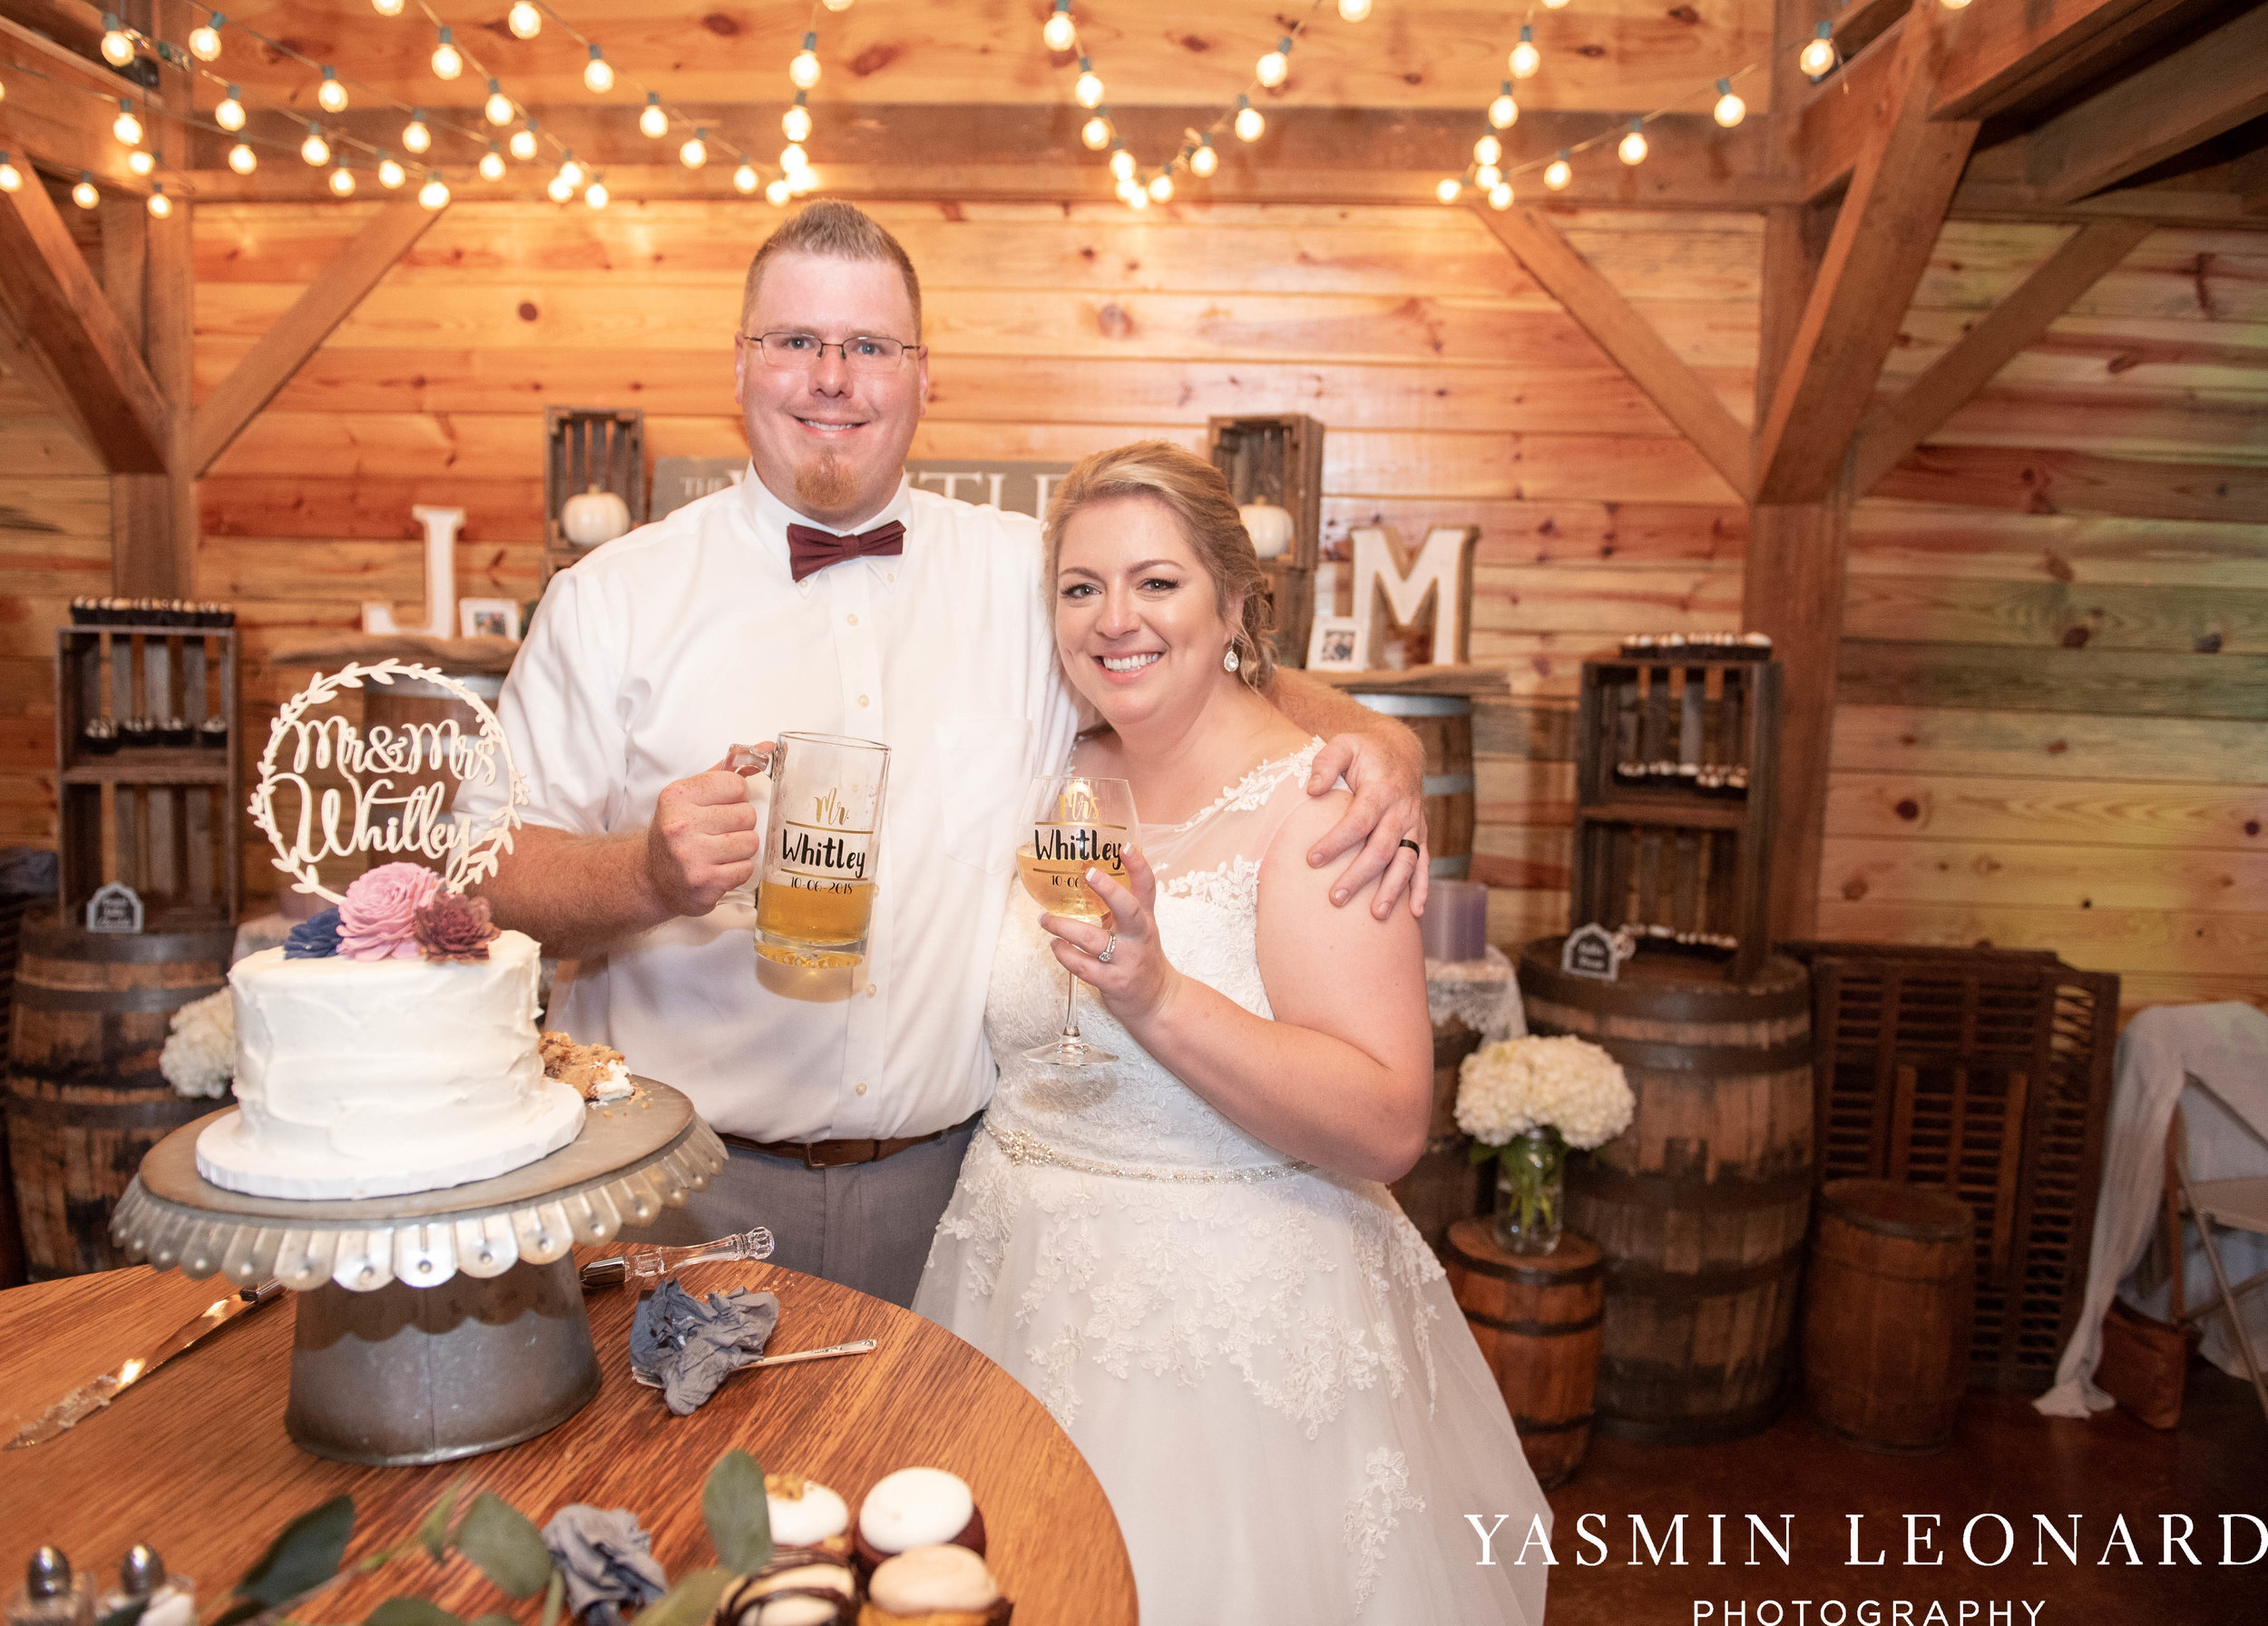 Danner Farms - NC Wedding Venues - NC Barns - Statesville NC - NC Wedding Photographer - High Point Wedding Photographer - Yasmin Leonard Photography-76.jpg